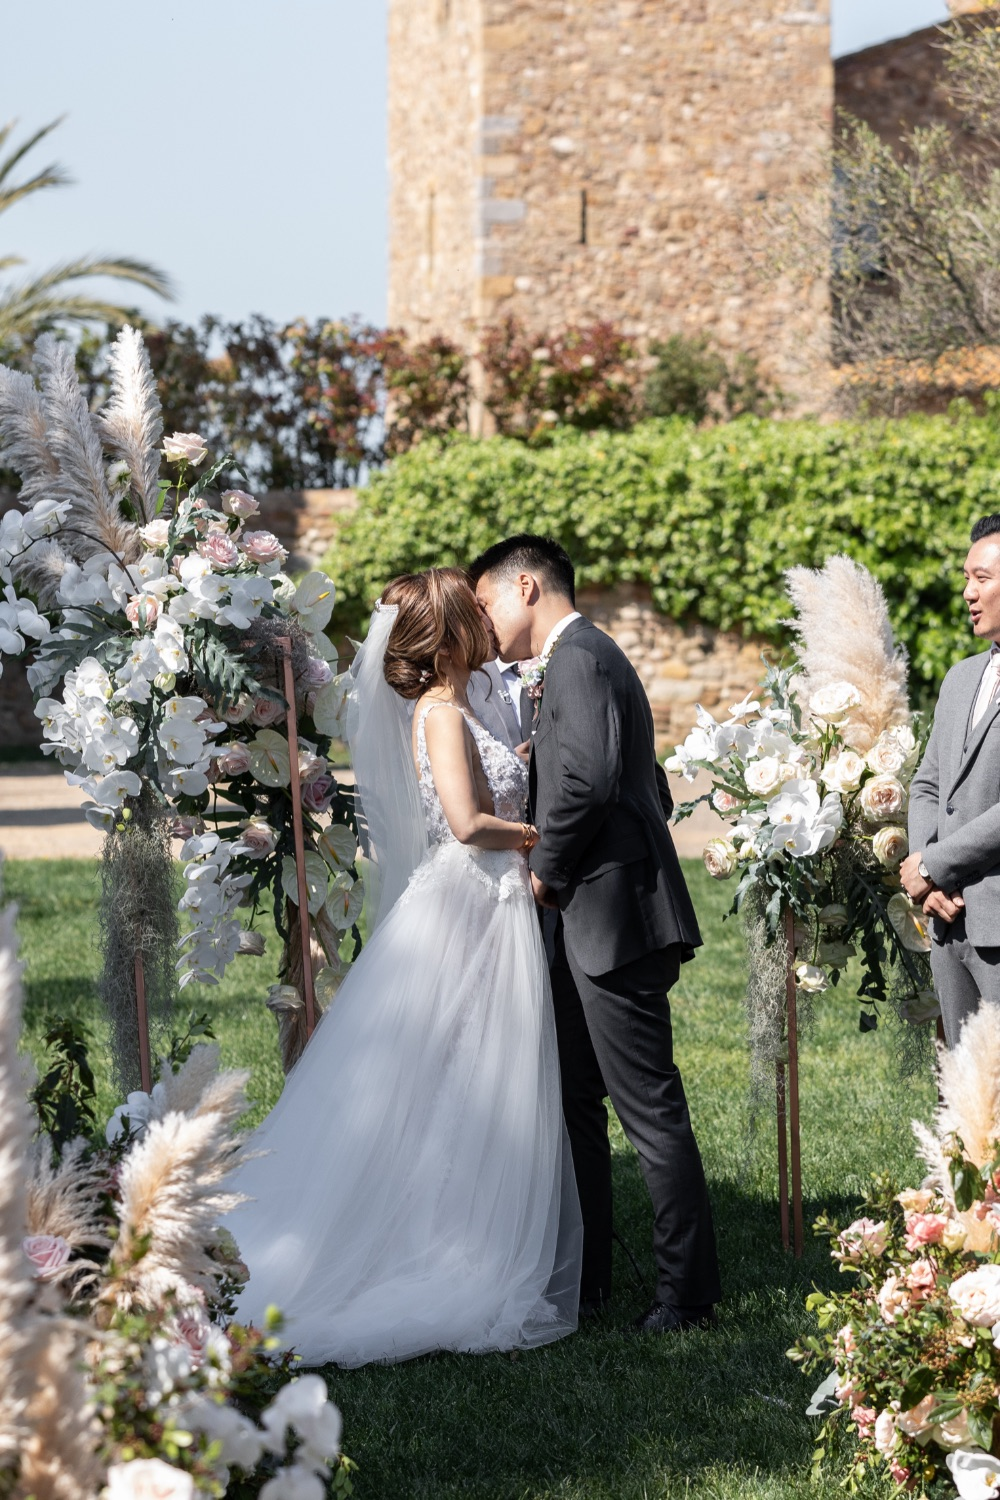 Wedding destination en un castillo ceremonia castle ceremony